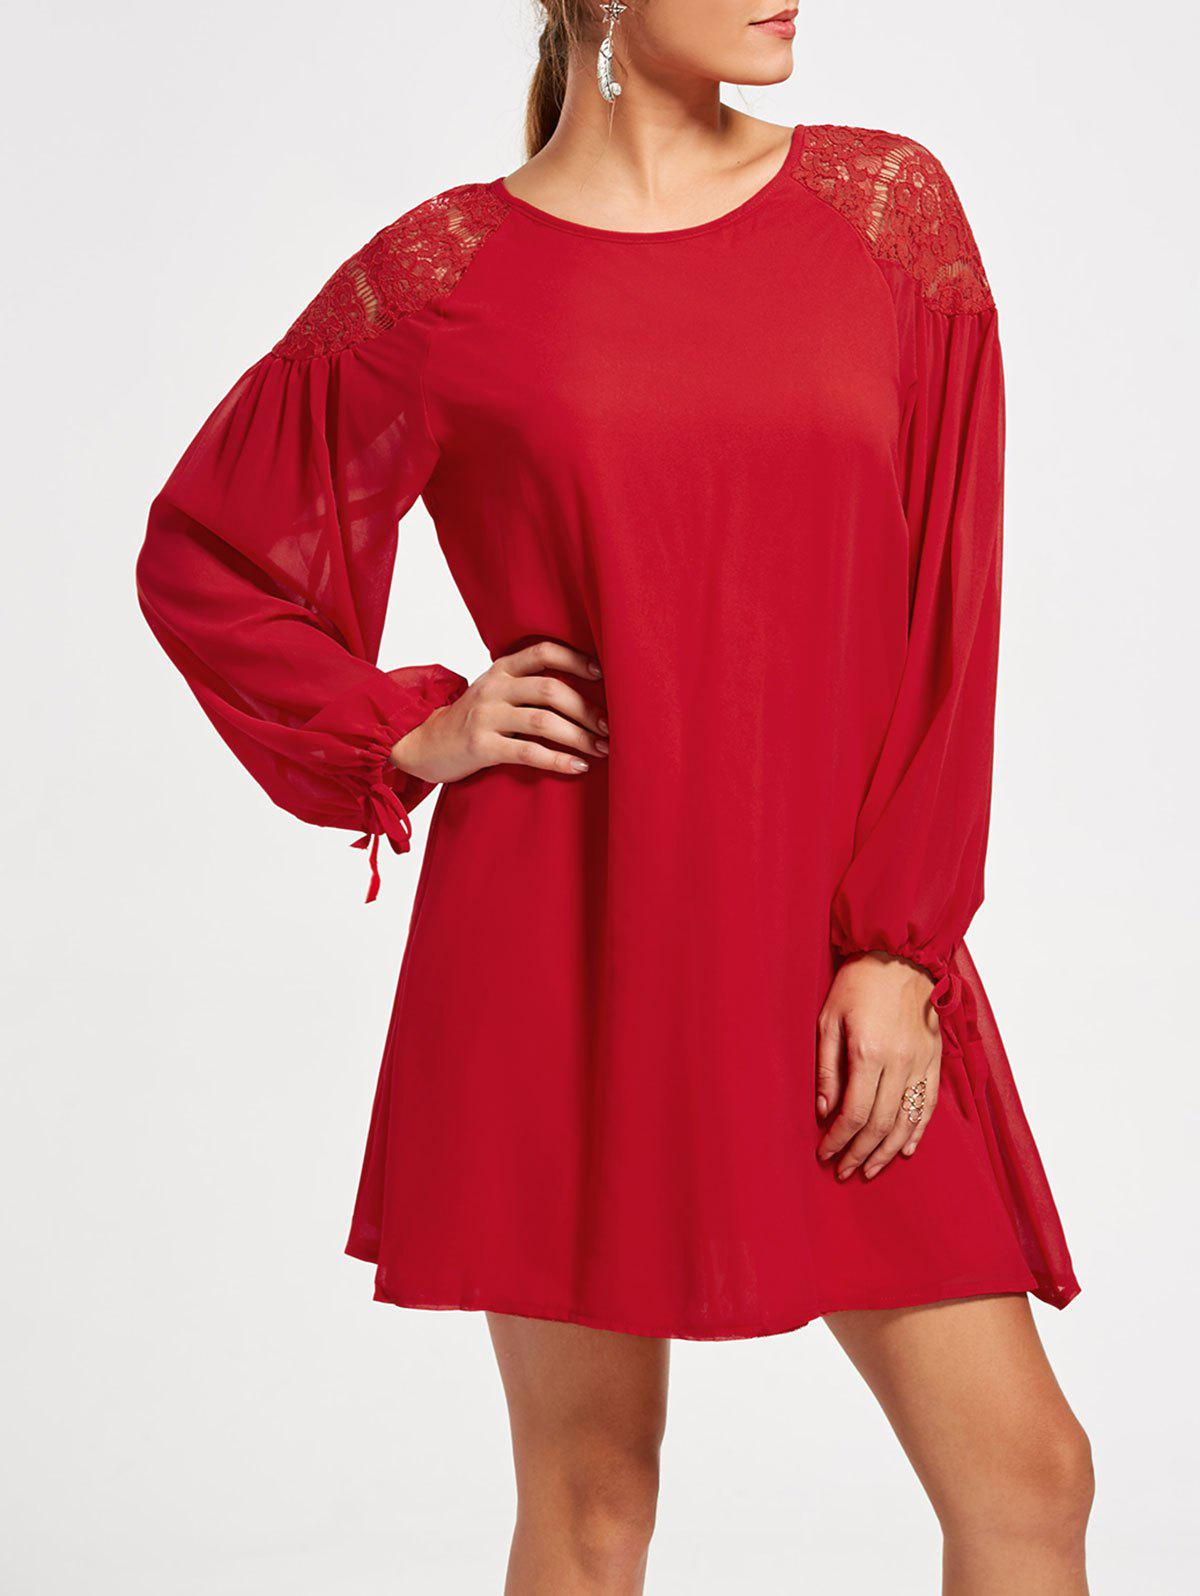 Raglan Long Puff Sleeve Casual Mini Swing Dress - RED M